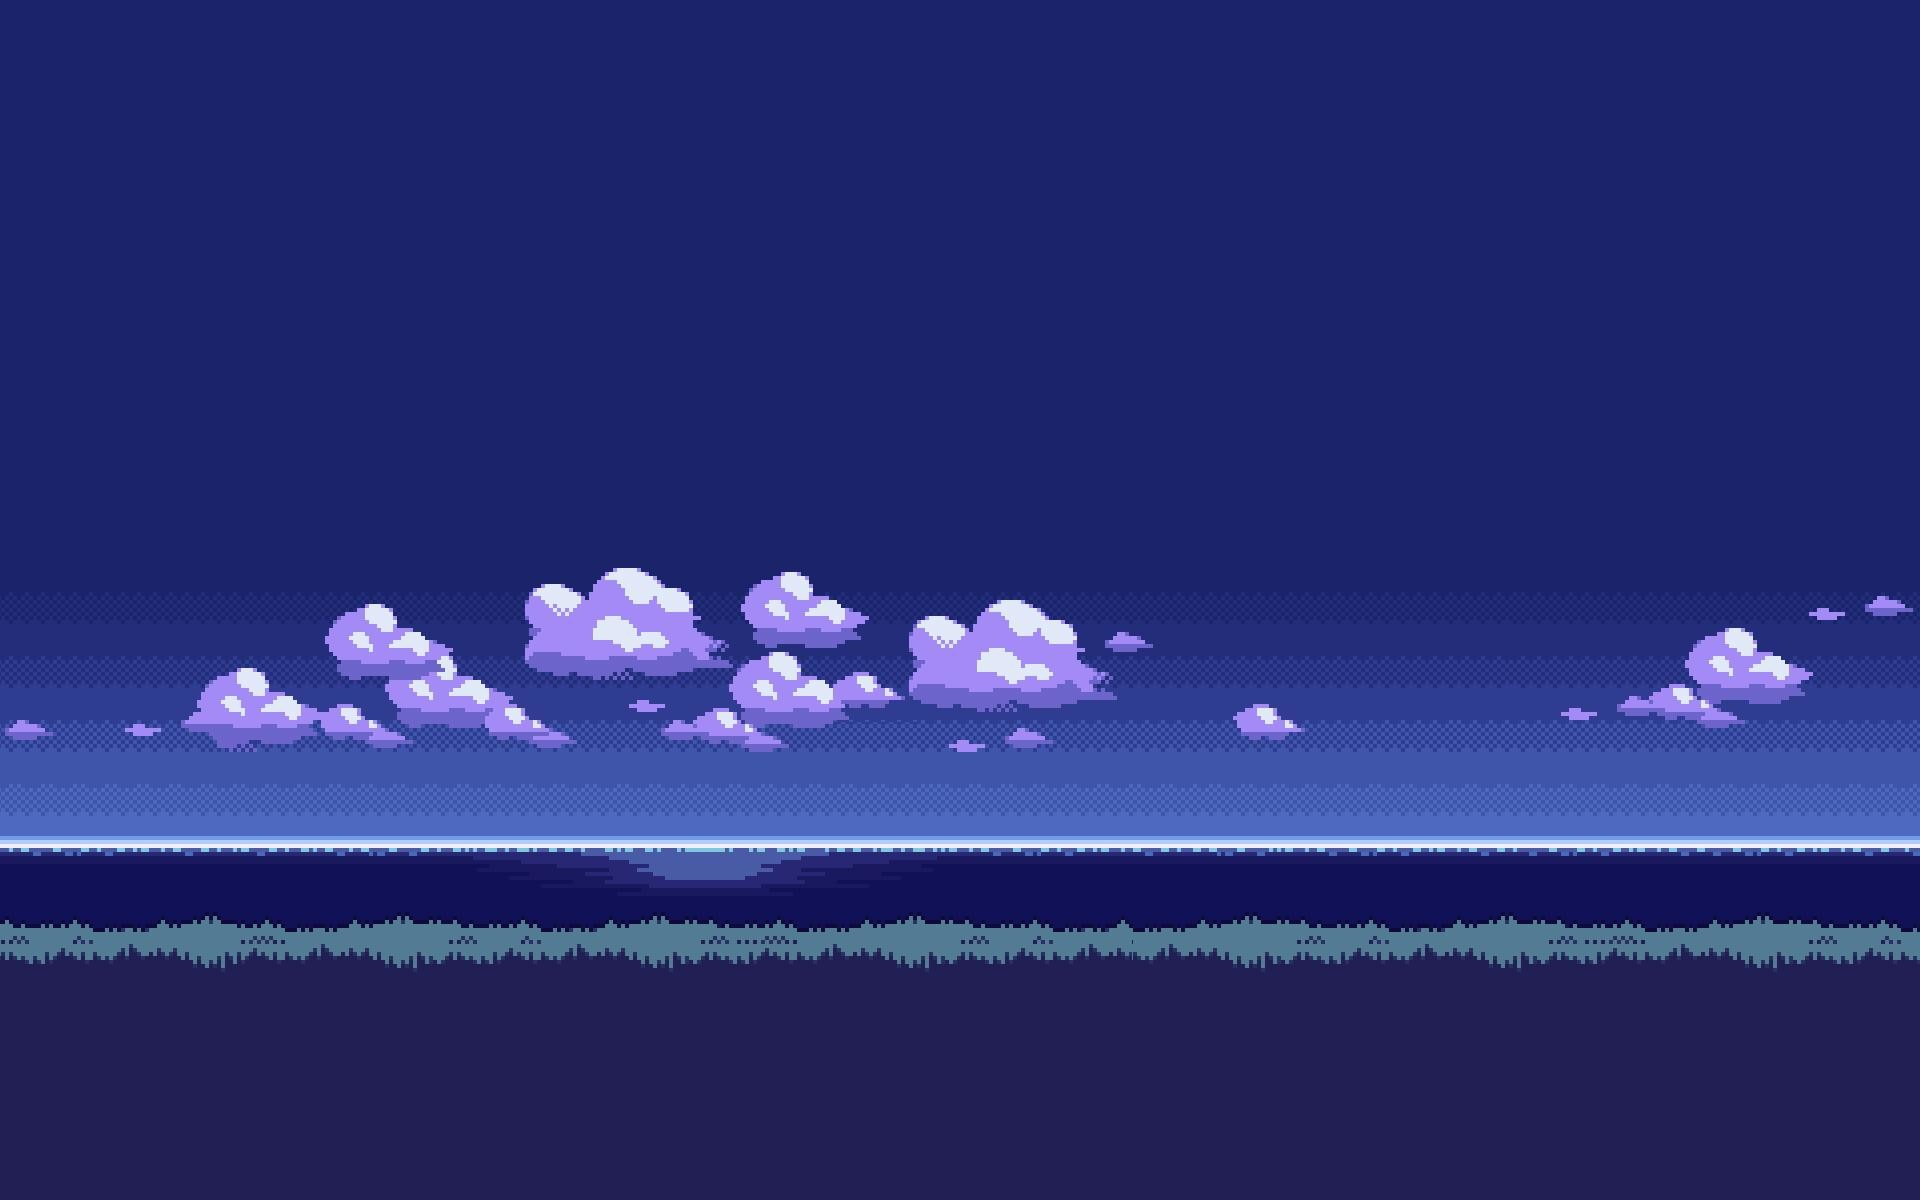 wallpaper.wiki-8-Bit-Backgrounds-PIC-WPE005678